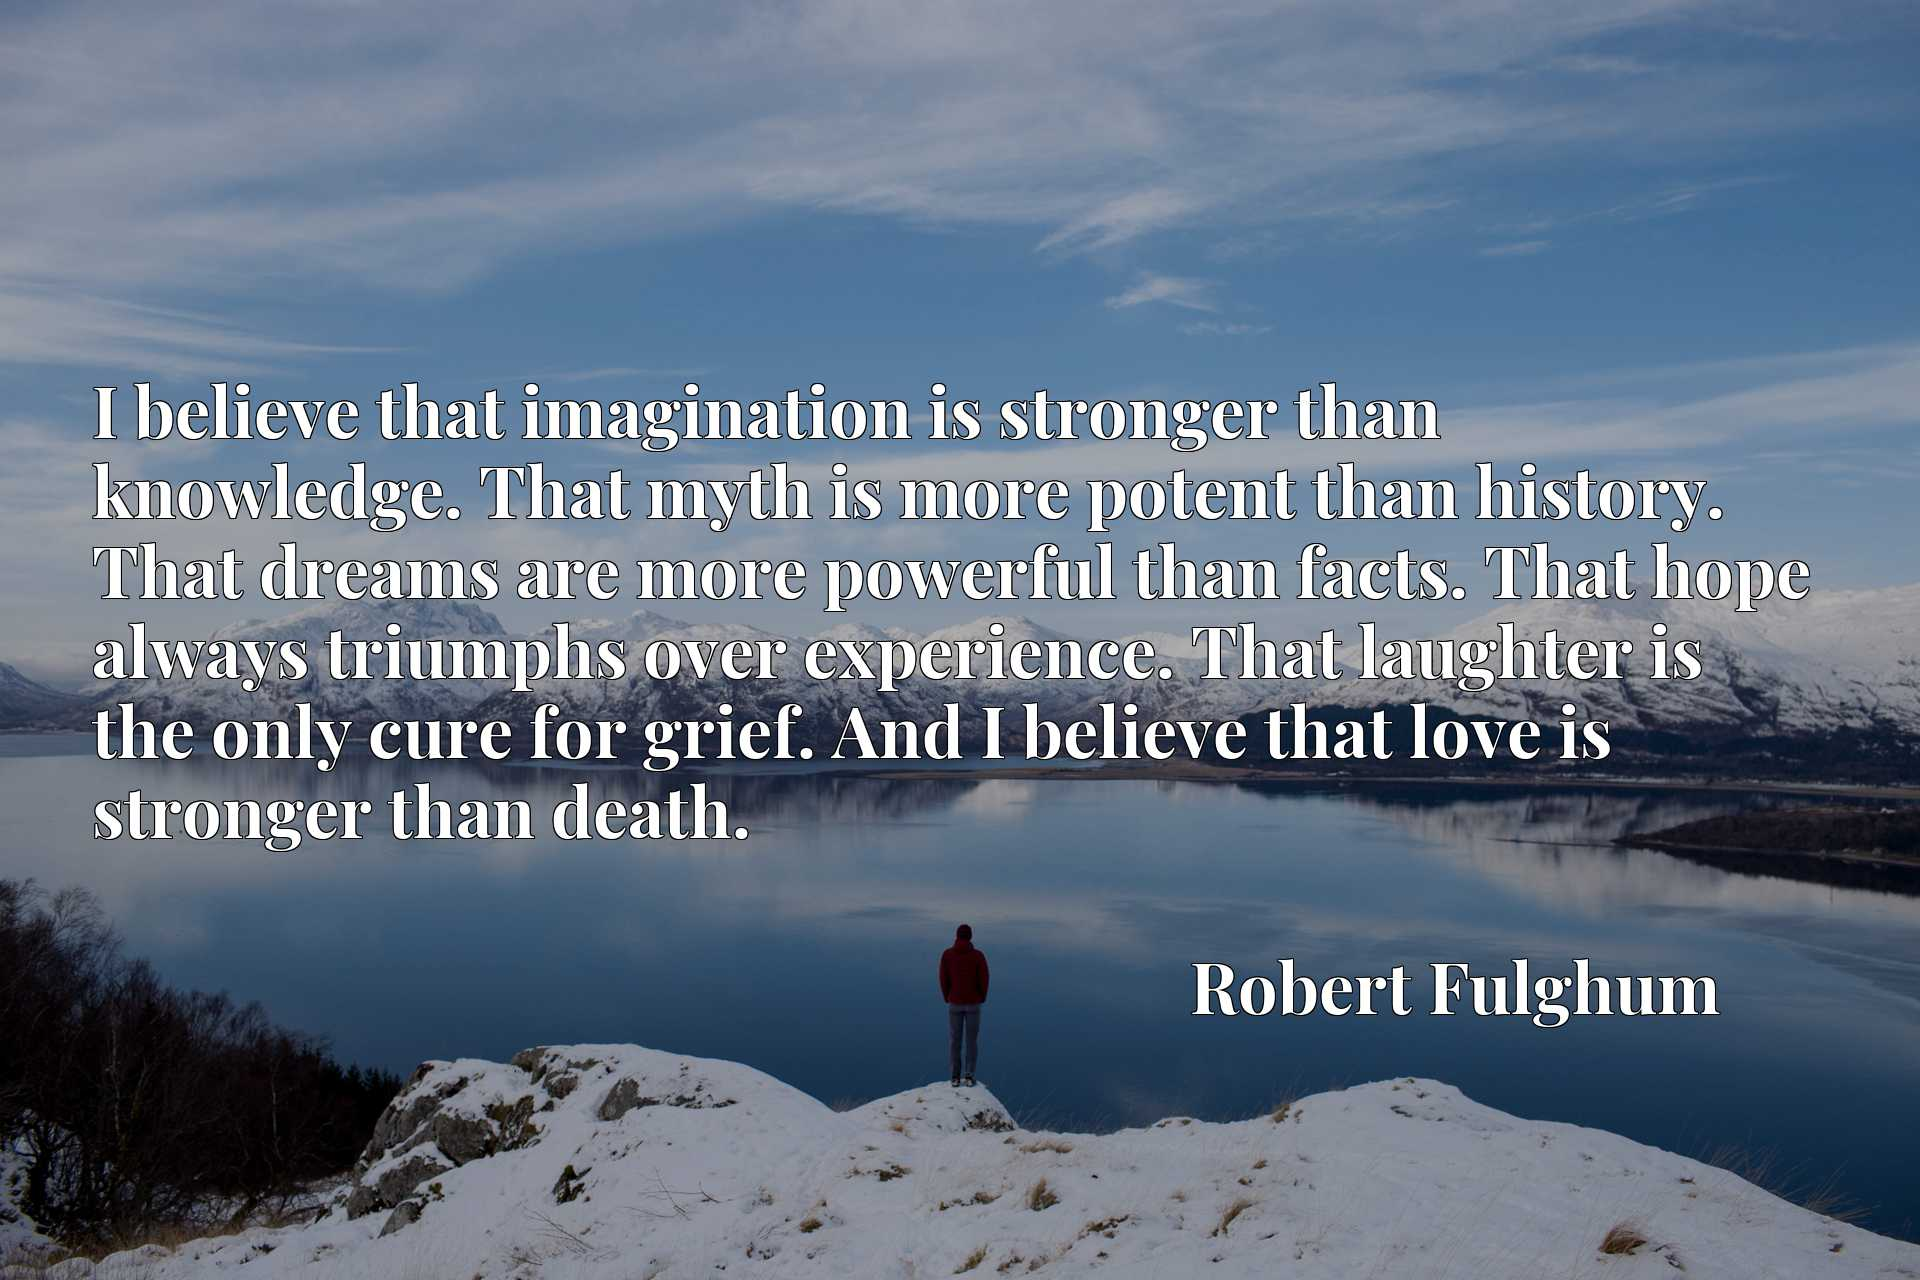 I believe that imagination is stronger than knowledge. That myth is more potent than history. That dreams are more powerful than facts. That hope always triumphs over experience. That laughter is the only cure for grief. And I believe that love is stronger than death.